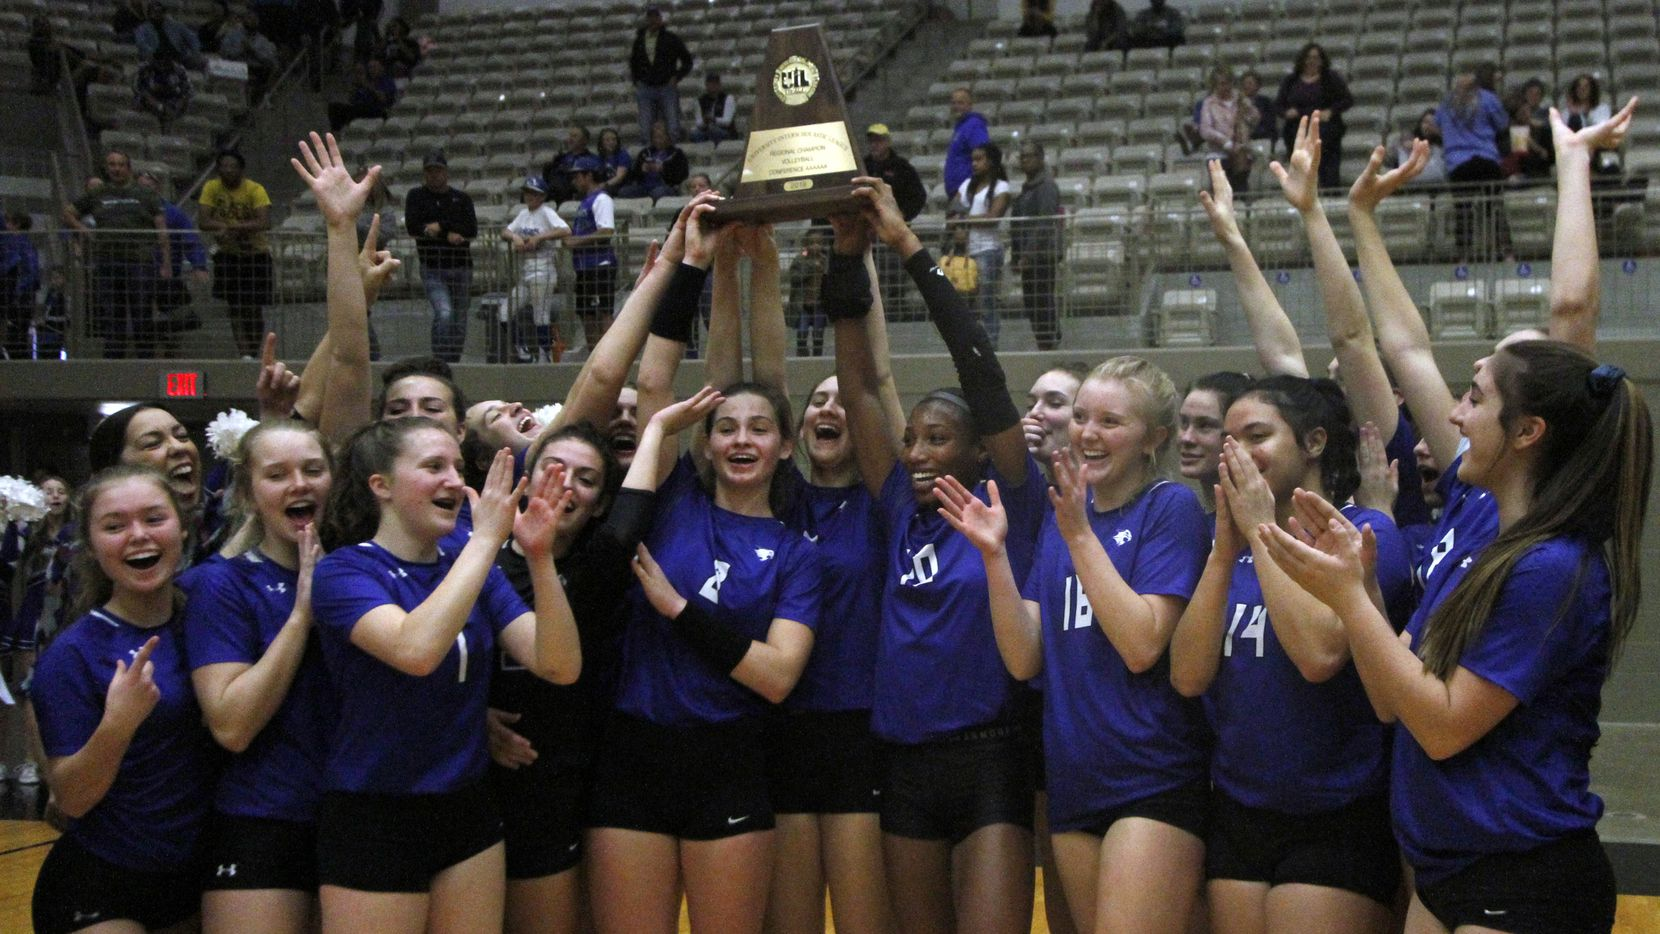 Trophy Club Byron Nelson celebrates a 25-17, 25-17, 25-16 victory over Denton Guyer in Saturday's Class 6A Region l championship match at W.G. Thomas Coliseum in Haltom City. (Steve Hamm/ Special Contributor)